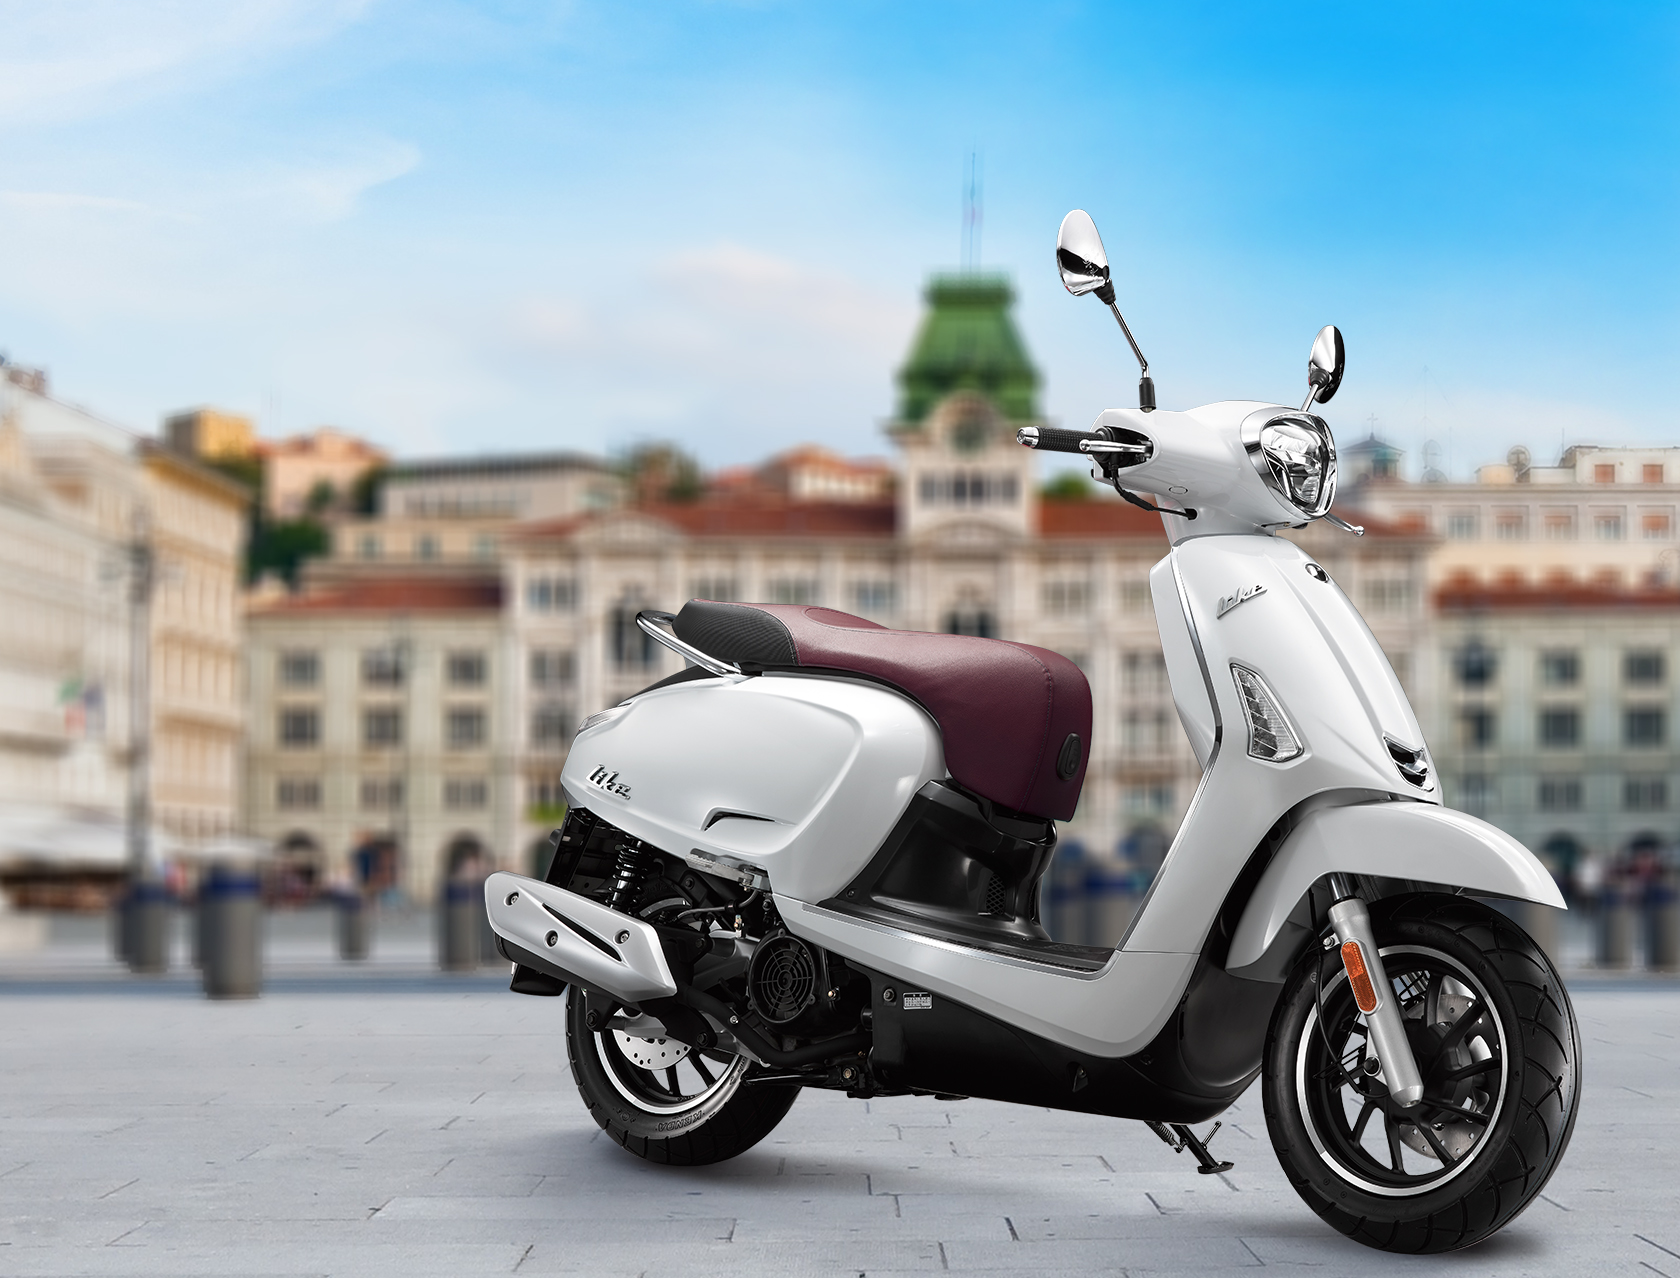 Kymco Scooter Connectivity Suite Shown At CES 2017